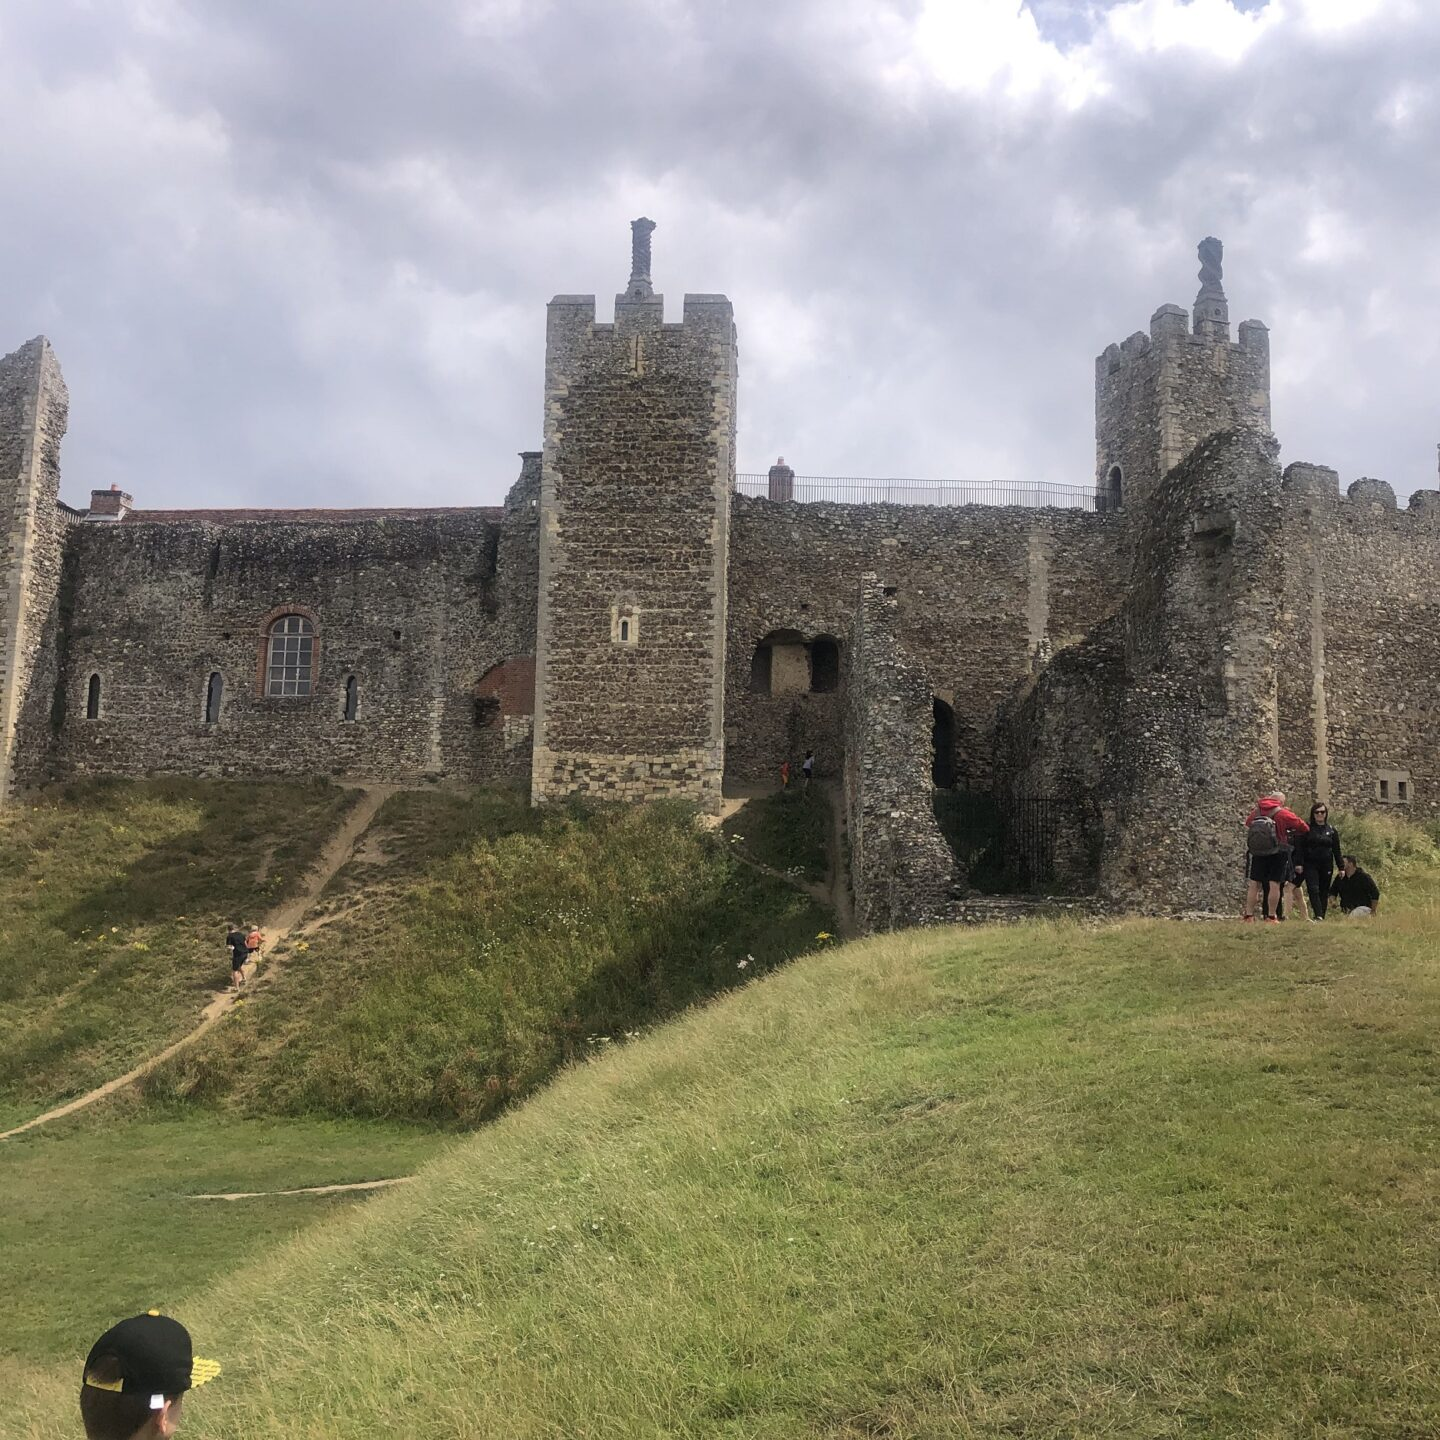 Our Trip to Framlingham Castle – Is it Worth the Entrance Fee?